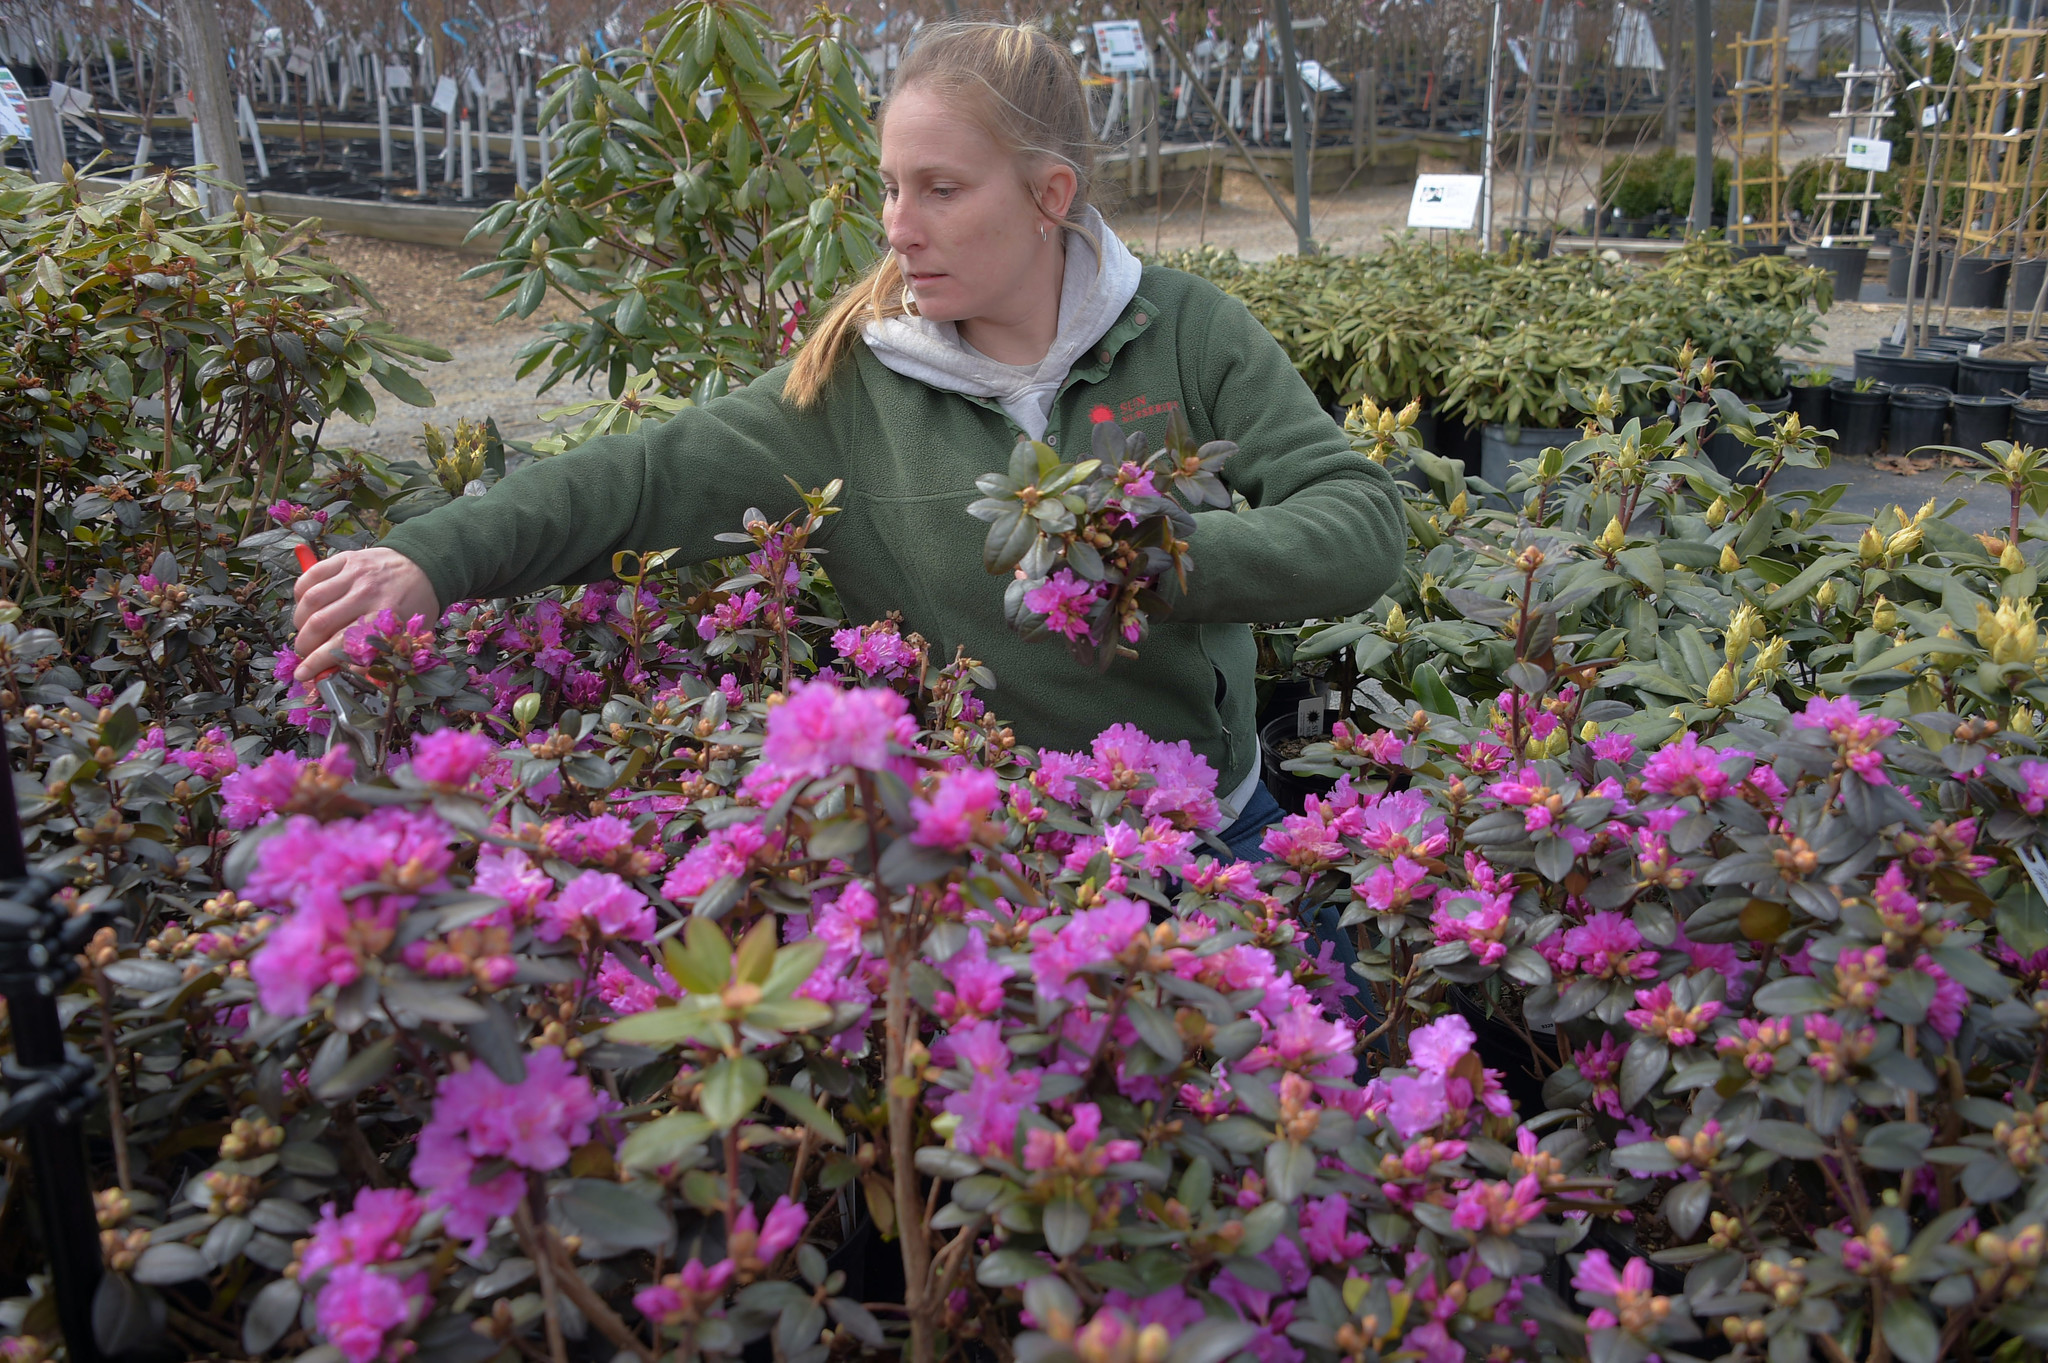 Woodbine, MD — 04/11/2018 — Kim Dazzo, nursery supervisor at Sun Nurseries works among the PJM Eli